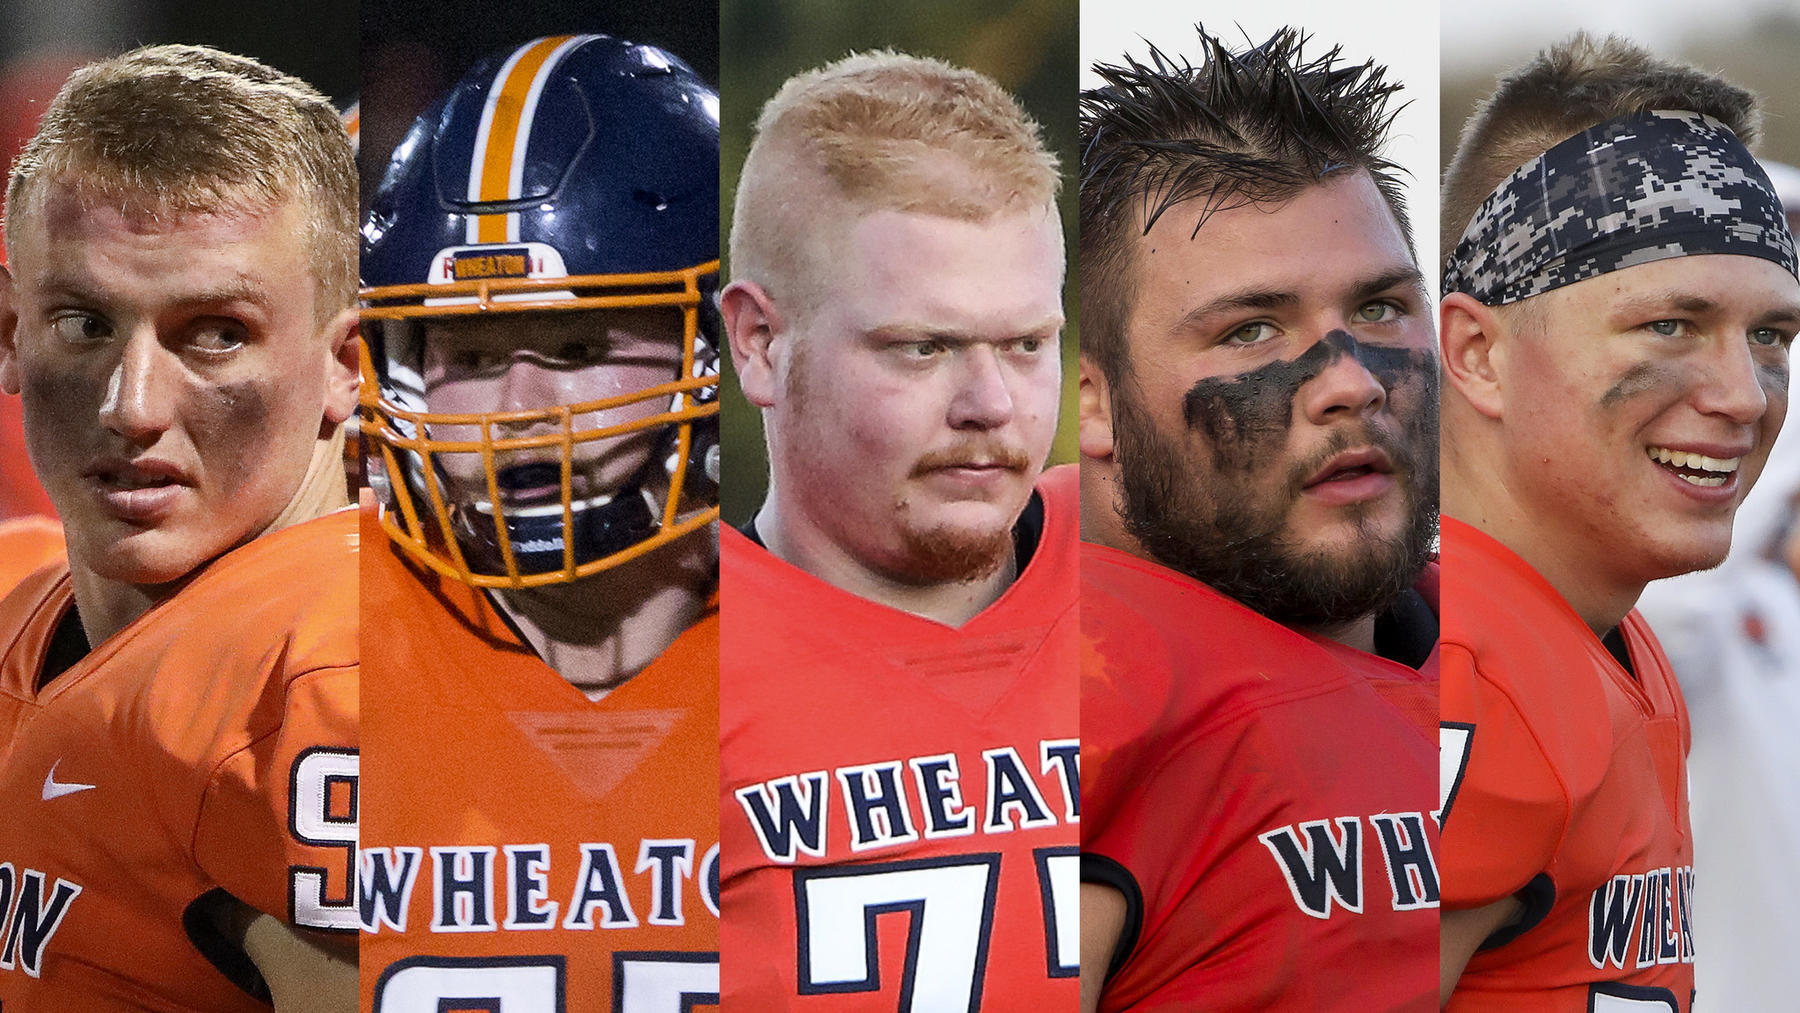 237a86e3f 5 Wheaton College football players face felony charges in hazing incident -  Chicago Tribune